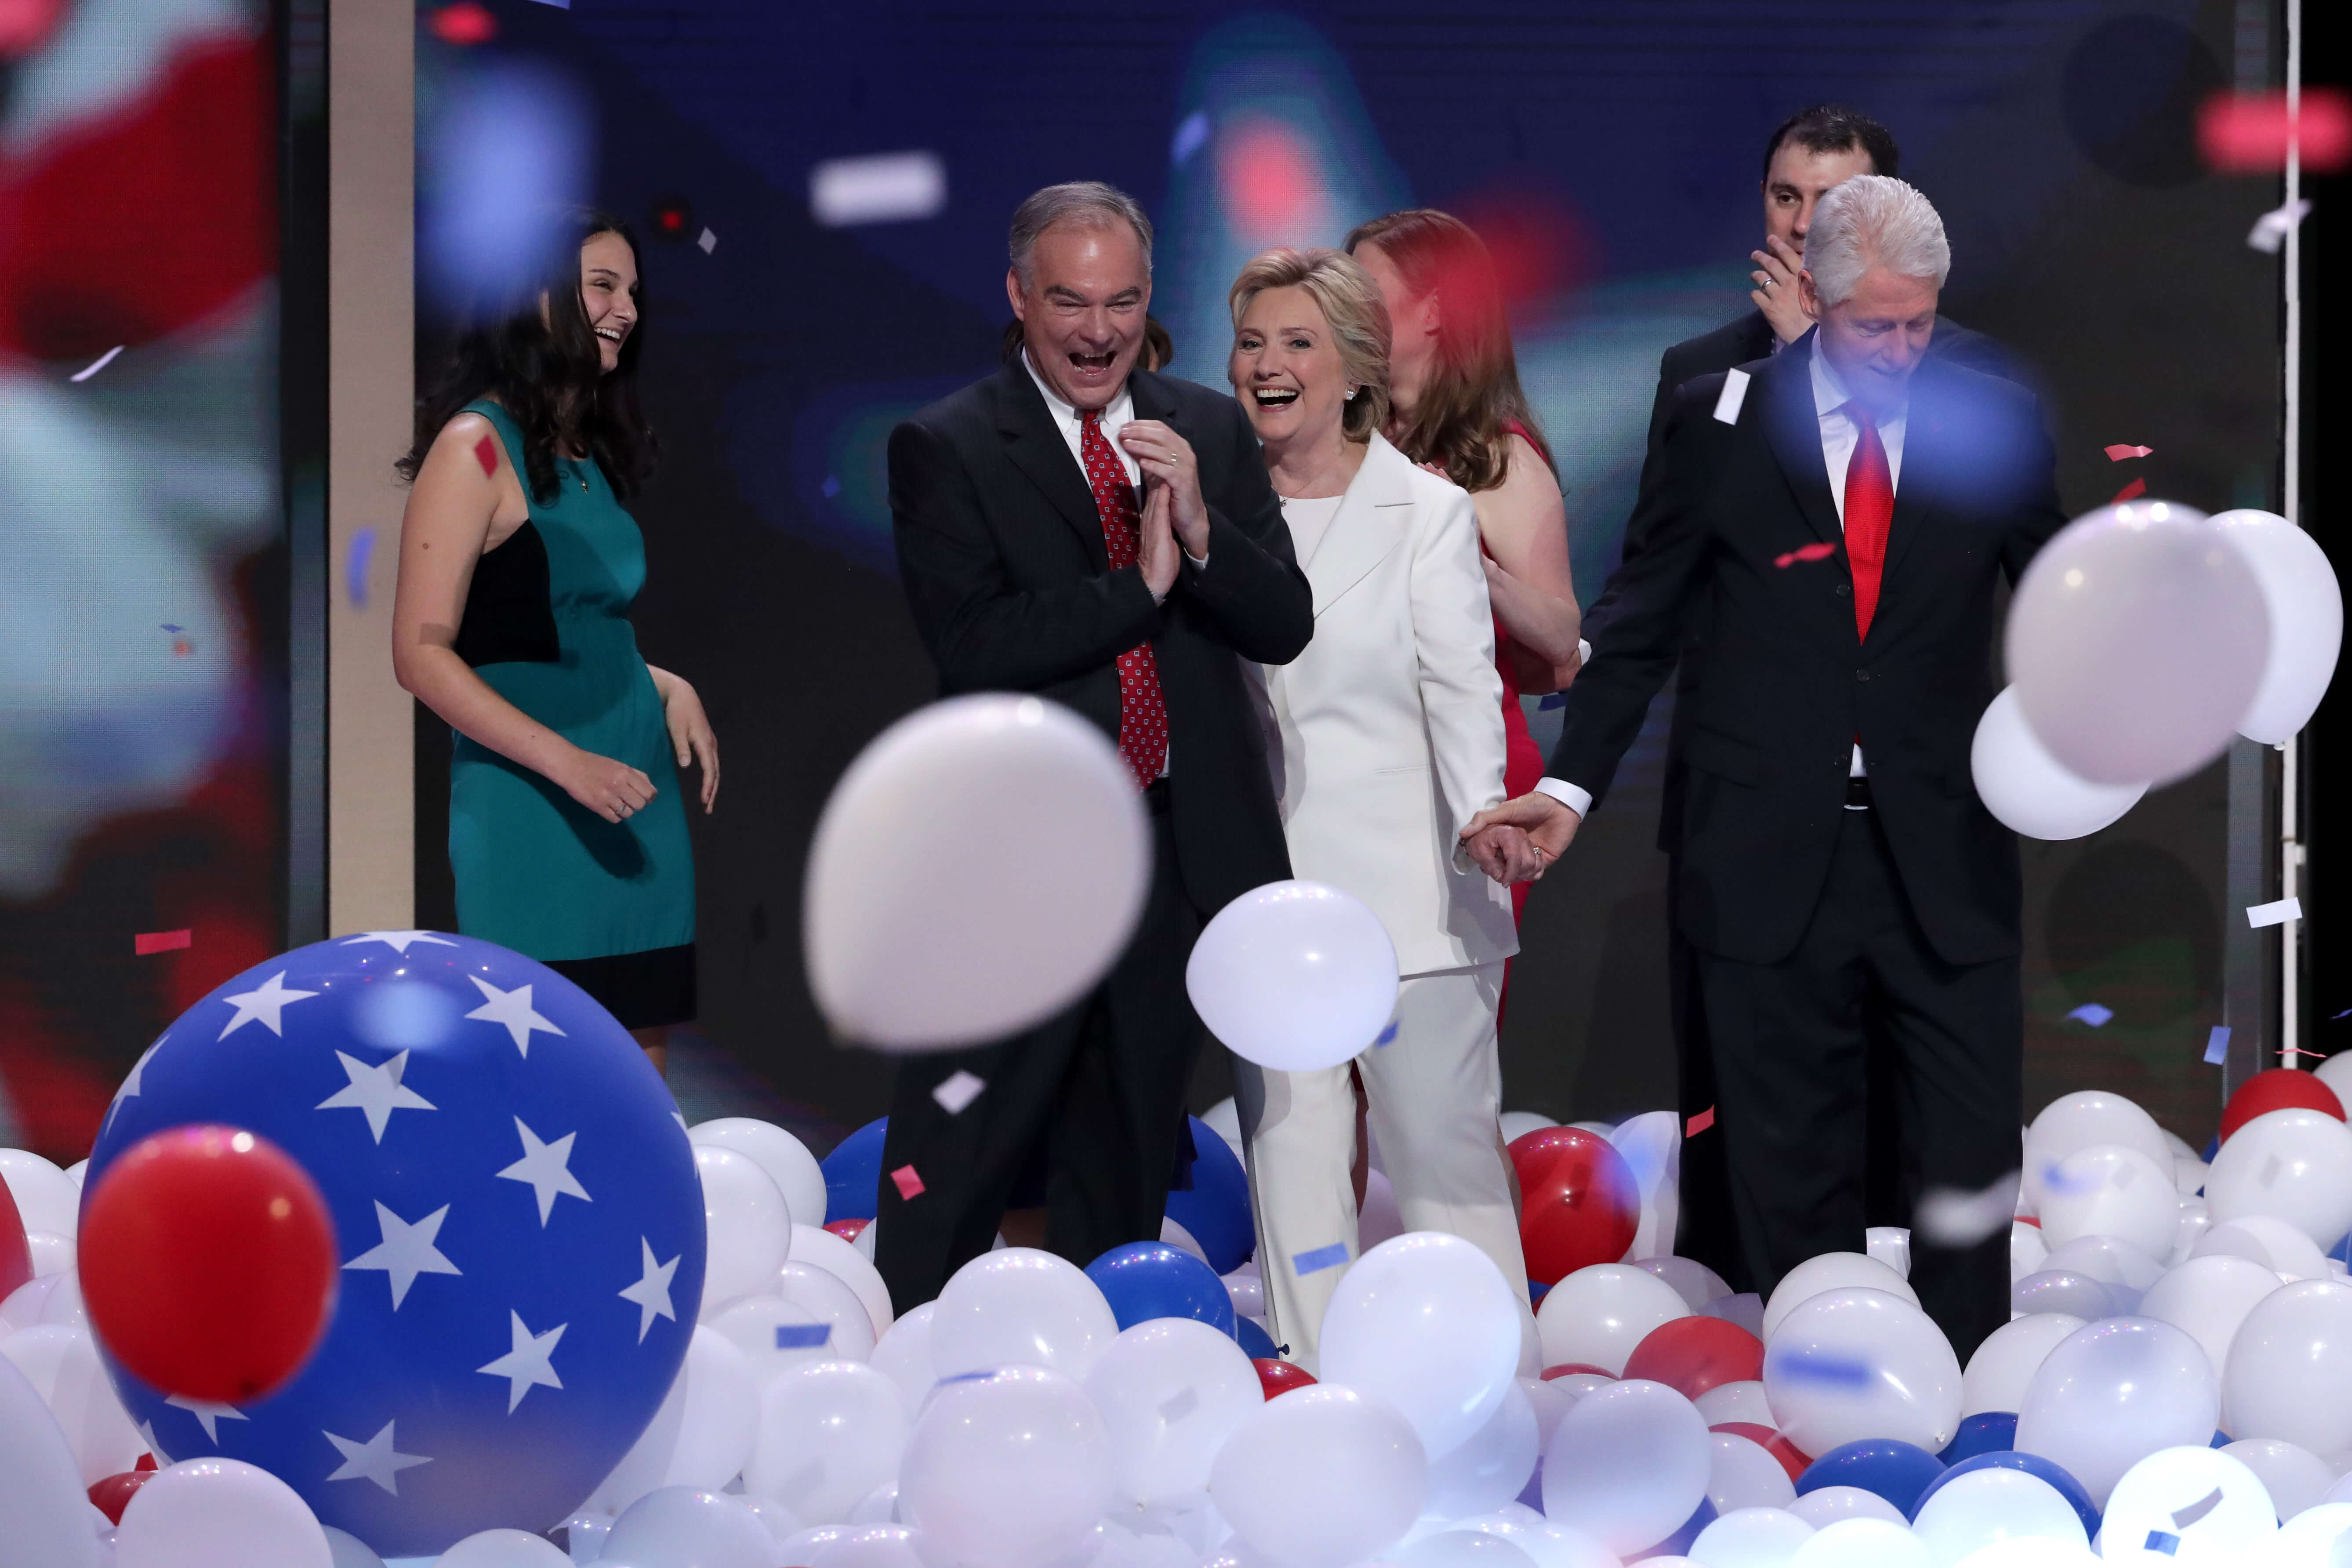 PHILADELPHIA, PA - JULY 28:  Democratic presidential candidate Hillary Clinton (C) and US Vice President nominee Tim Kaine (2nd-L) stand with their families on stage at the end of the fourth day of the Democratic National Convention at the Wells Fargo Center, July 28, 2016 in Philadelphia, Pennsylvania. Democratic presidential candidate Hillary Clinton received the number of votes needed to secure the party's nomination. An estimated 50,000 people are expected in Philadelphia, including hundreds of protesters and members of the media. The four-day Democratic National Convention kicked off July 25.  (Photo by Alex Wong/Getty Images)